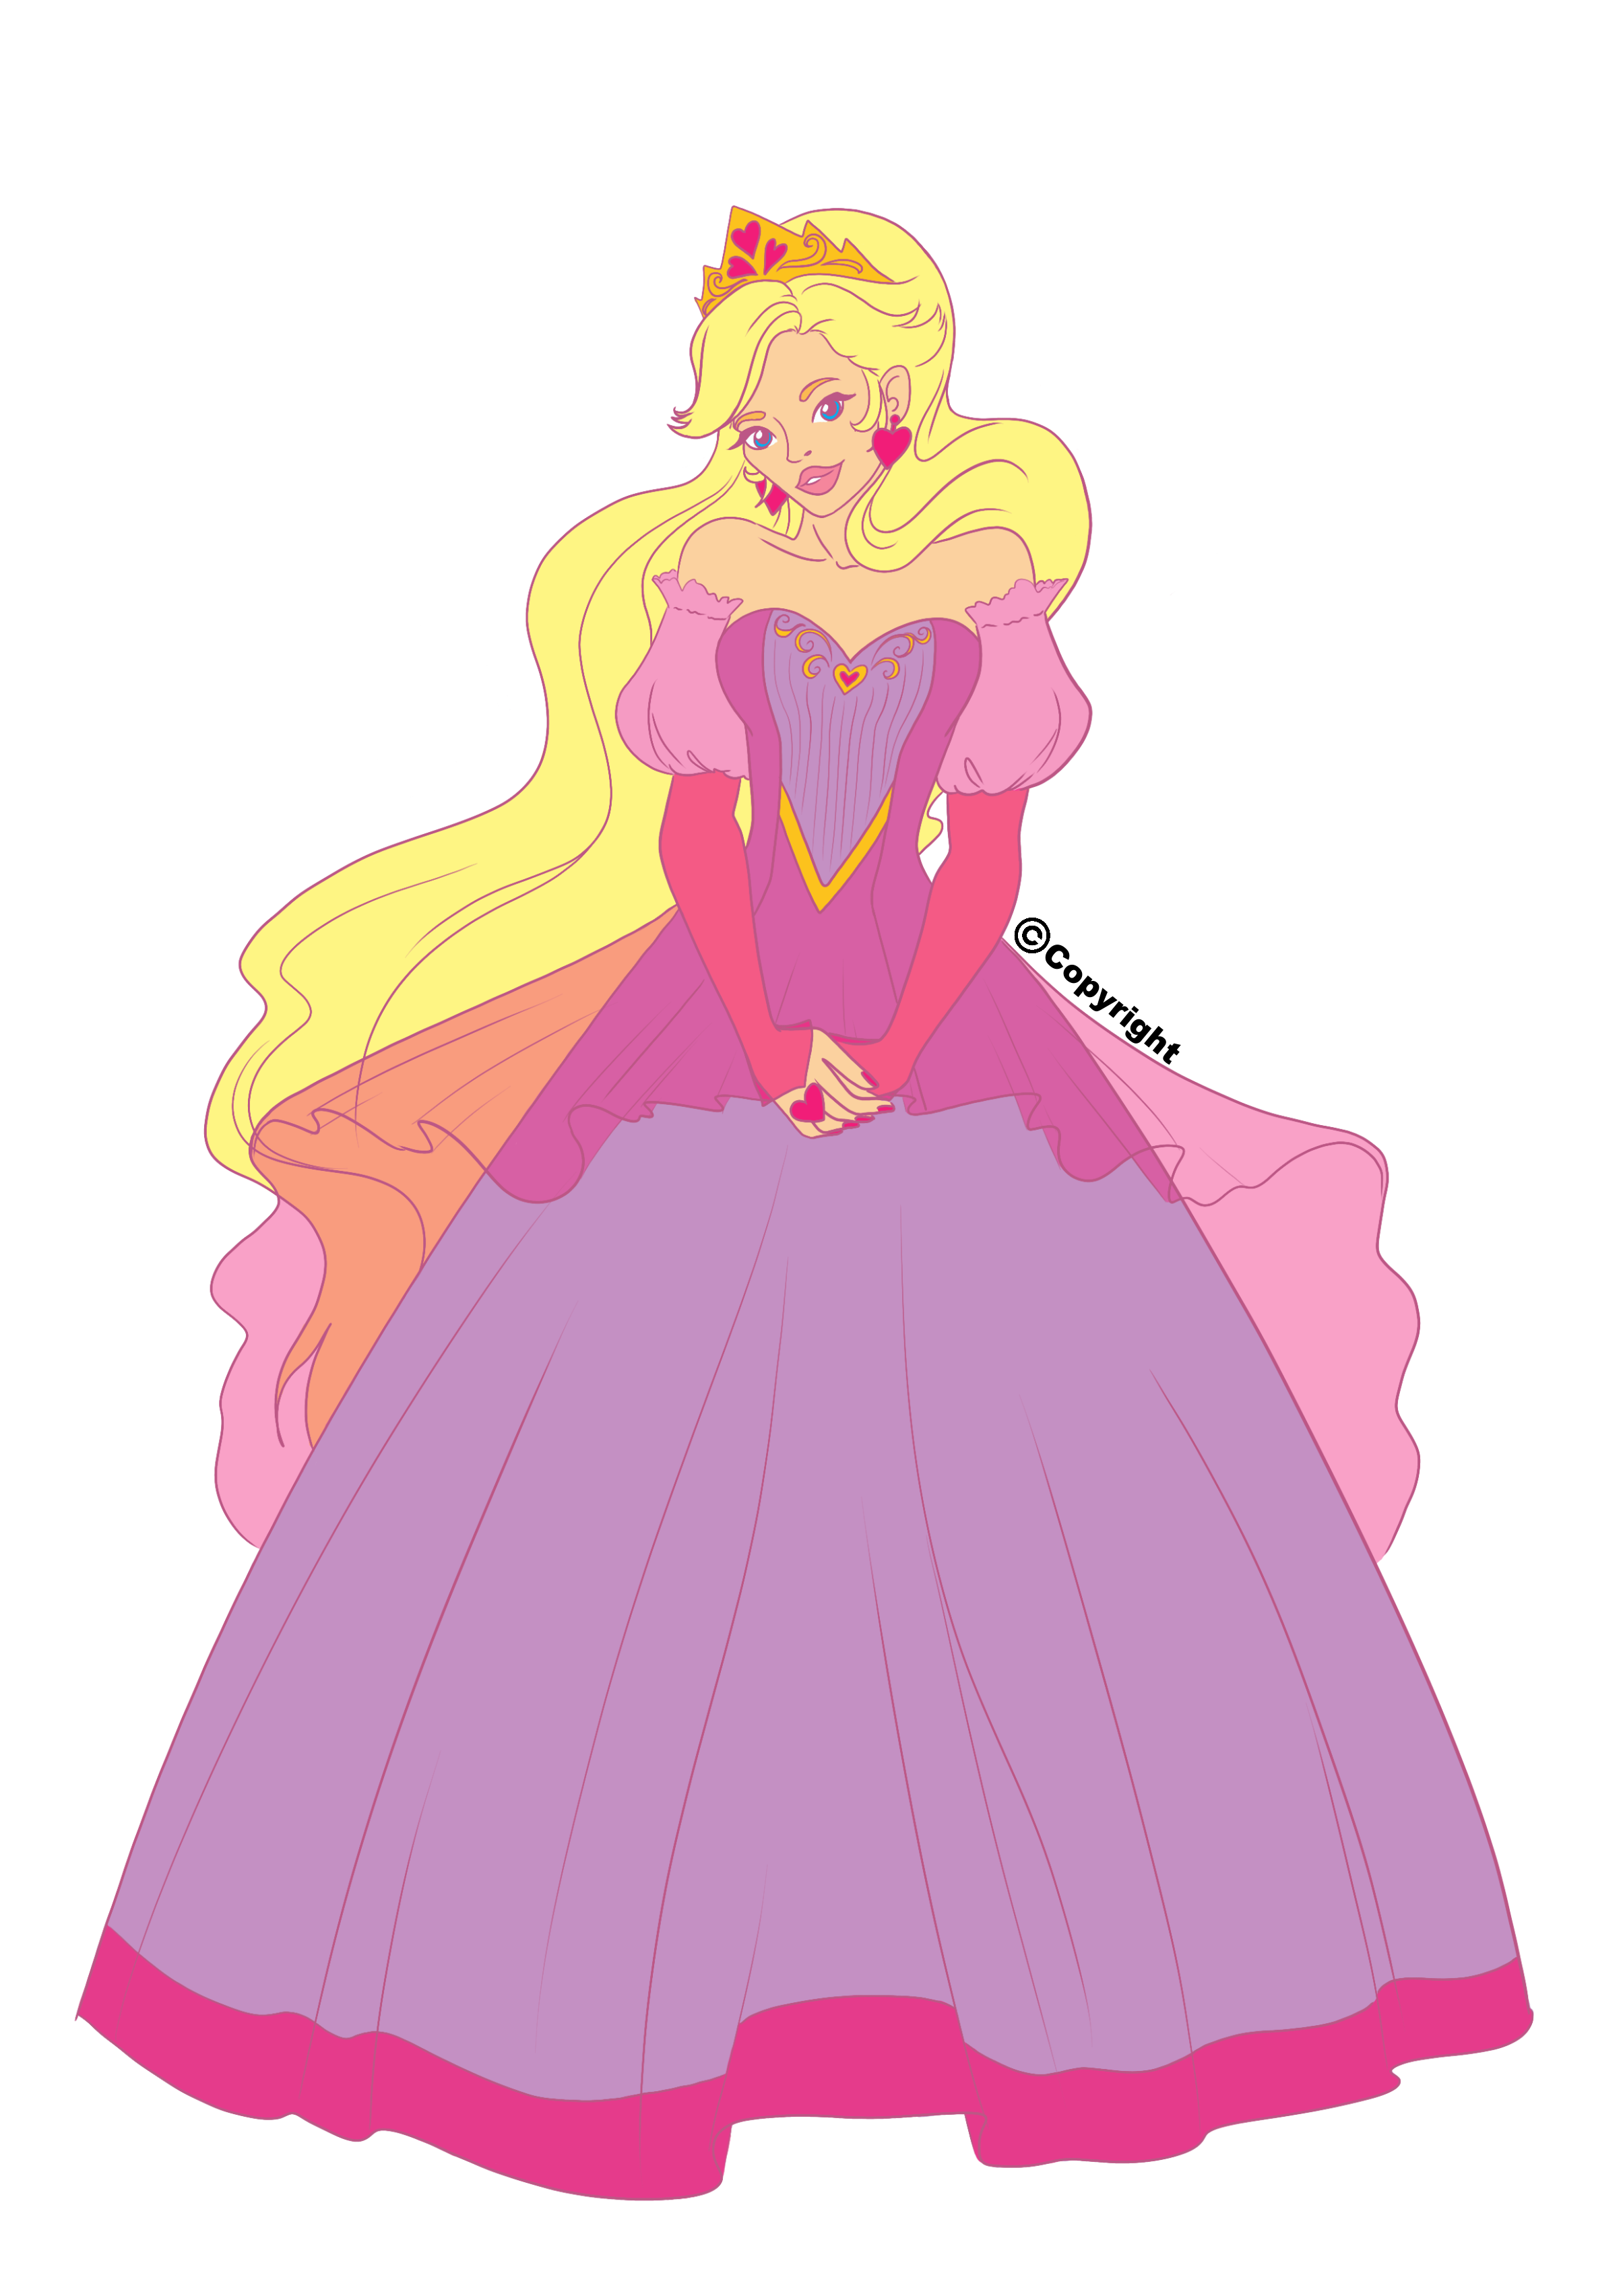 Fairytale Princess